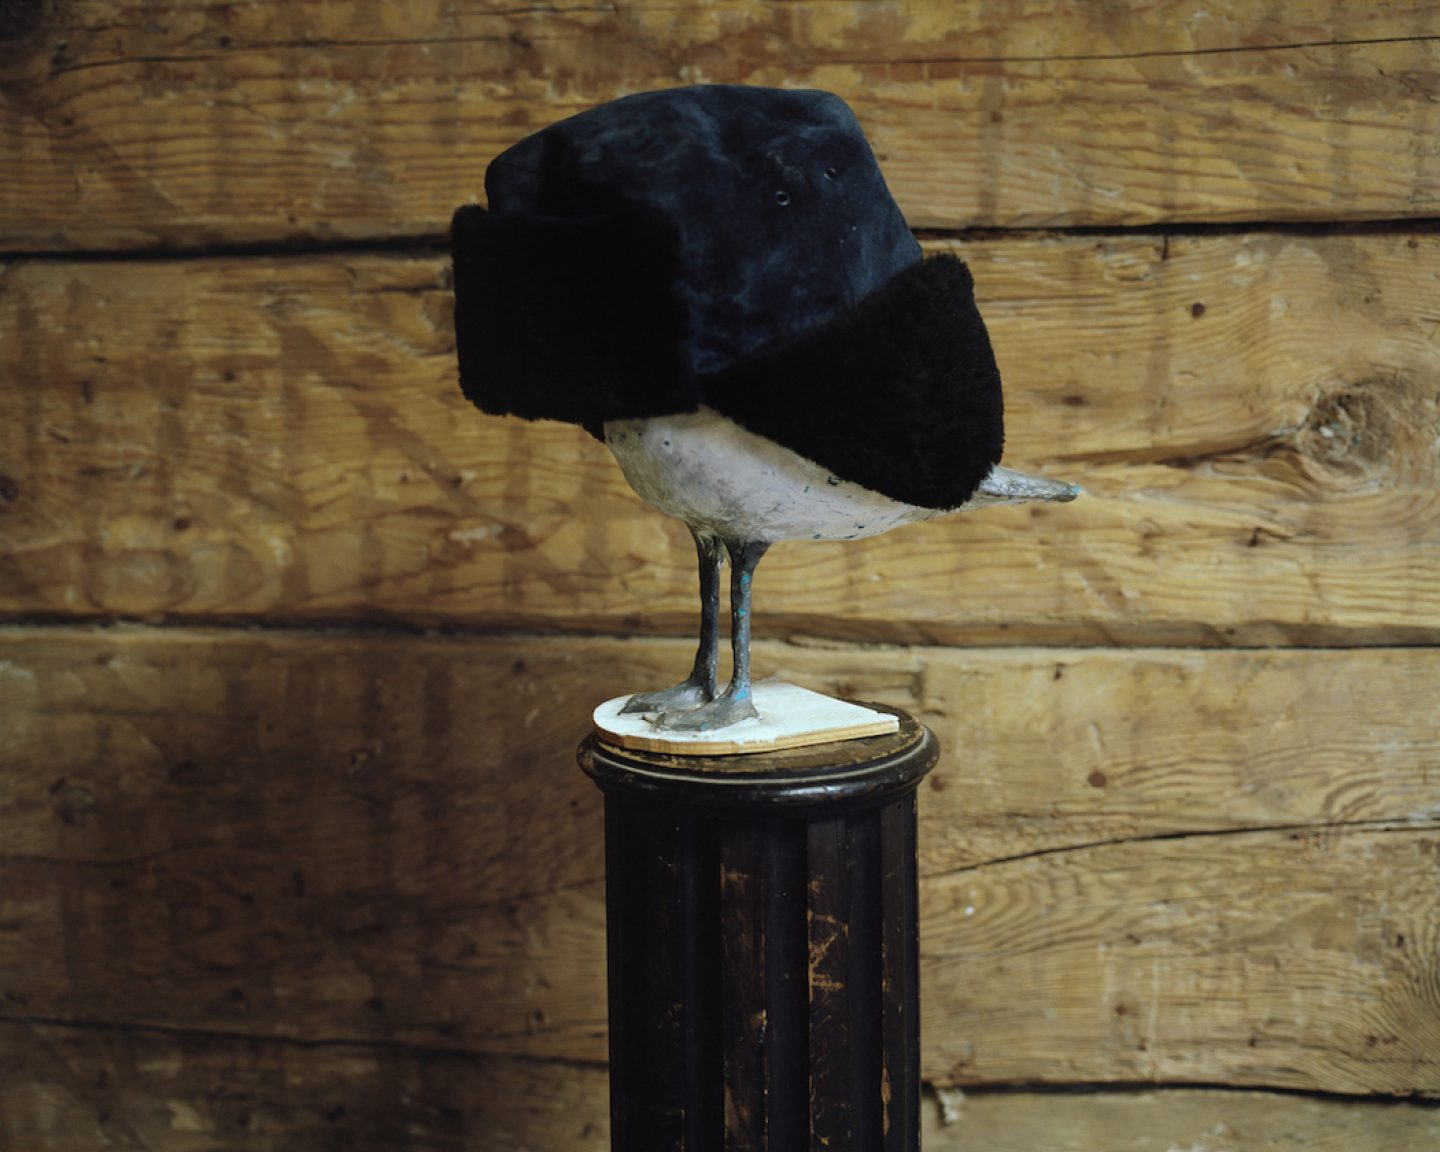 Plasticine seagull sculpture with hat. Bolderaja, 2013